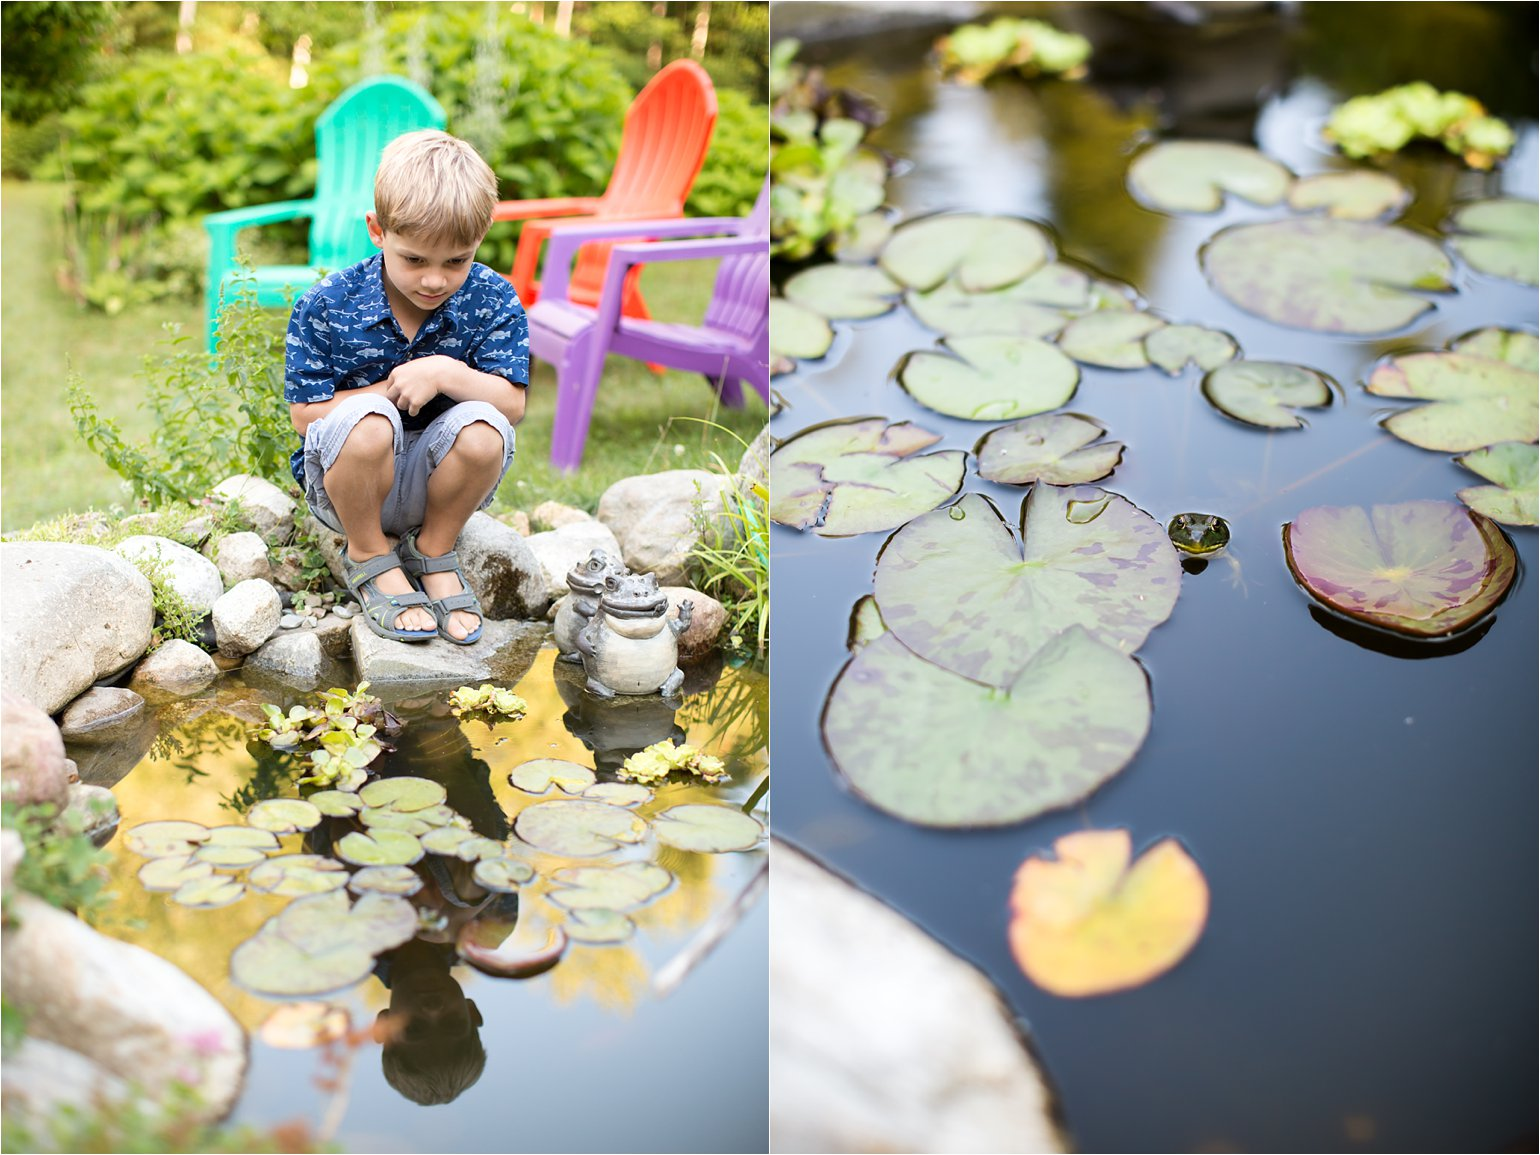 Boy at Frog Pond © 2015 Maundy Mitchell